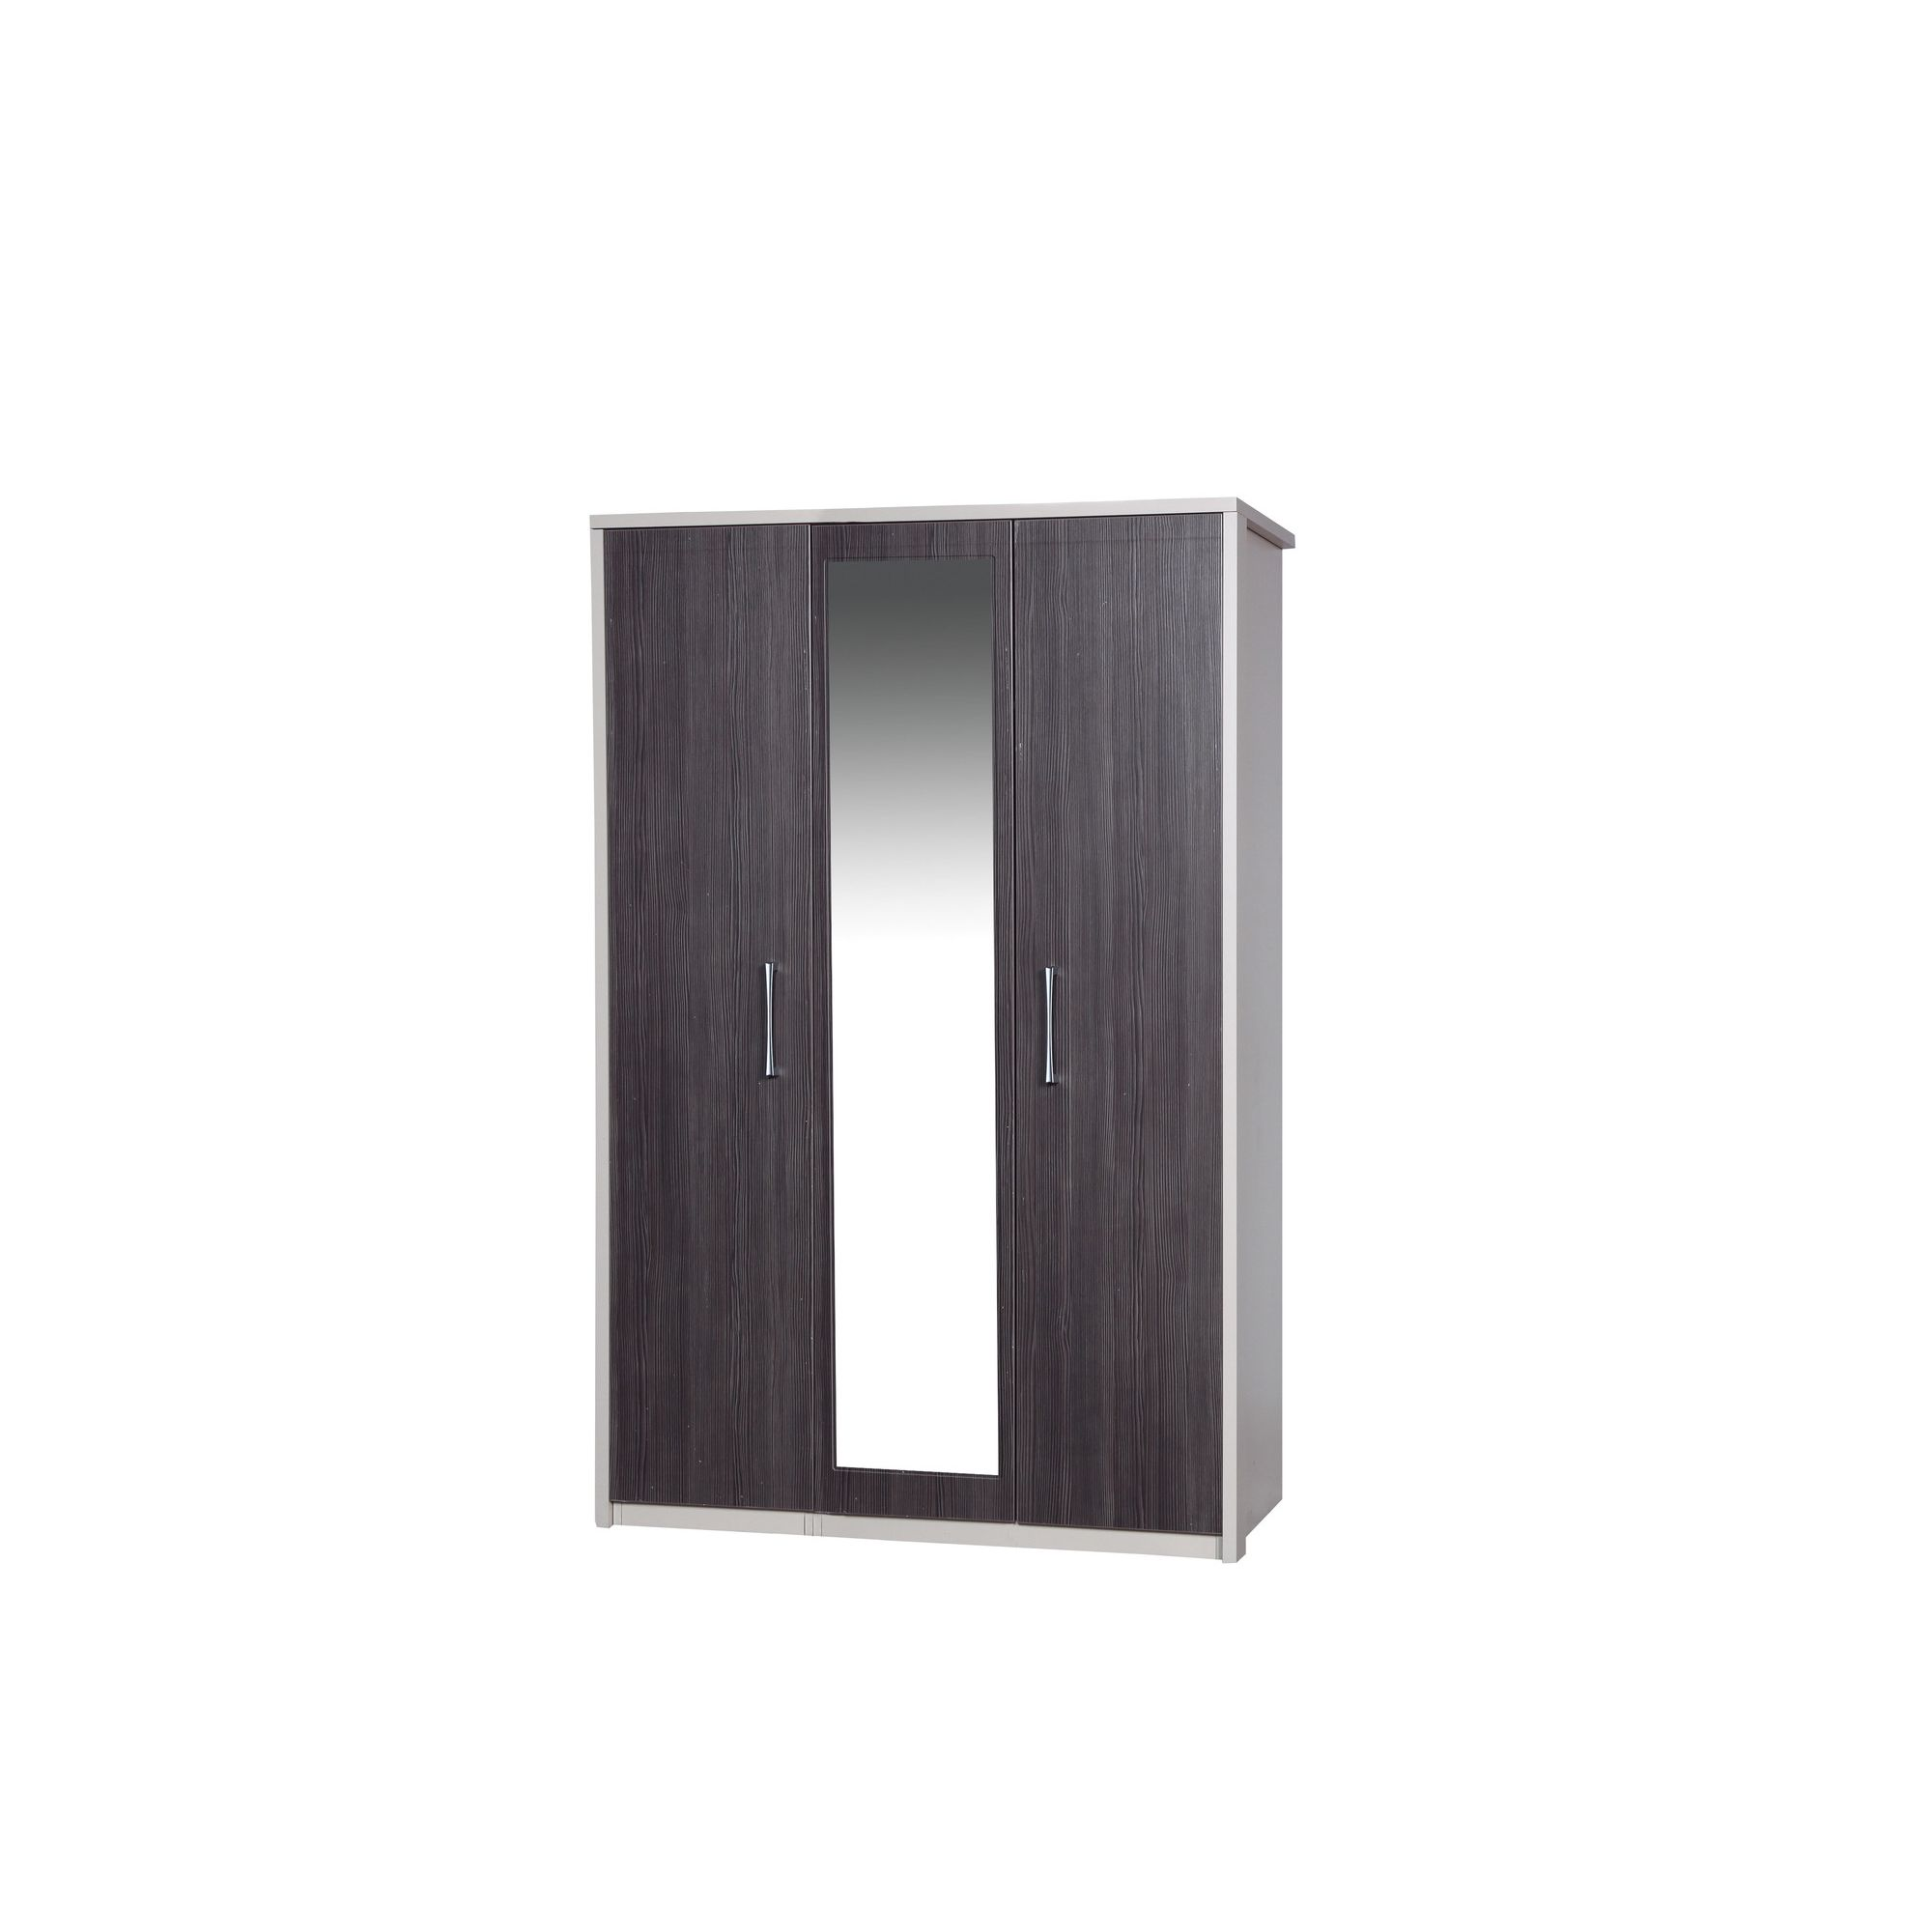 Alto Furniture Avola 3 Door Wardrobe with Mirror - Cream Carcass With Grey Avola at Tesco Direct